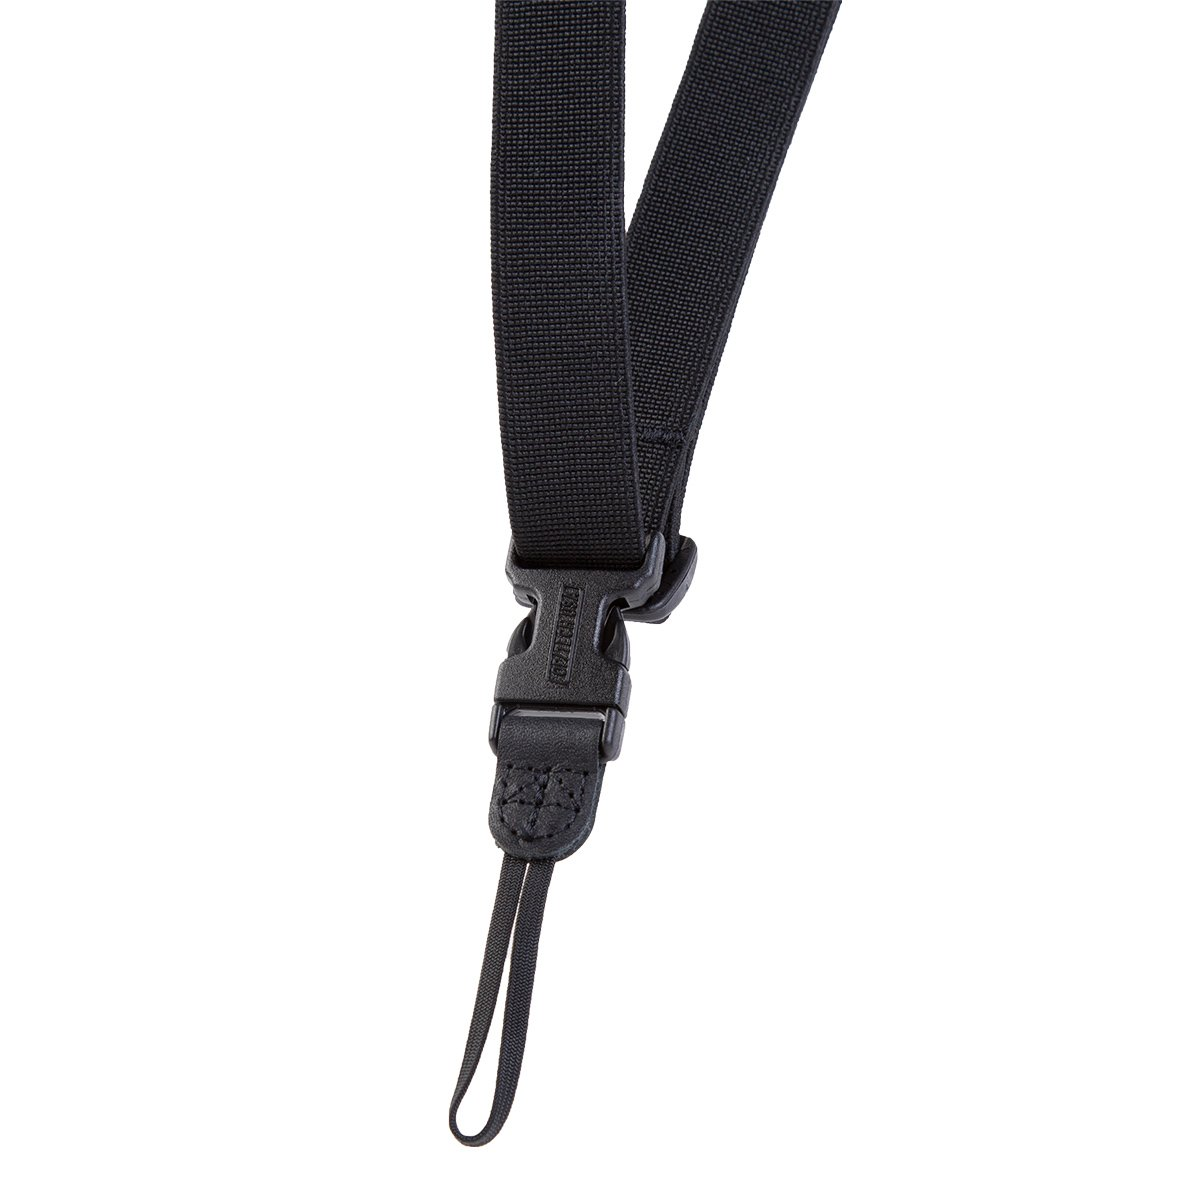 OP/TECH USA Bino/Cam Harness - Self-Adjusting Harness with Quick Disconnects - Elastic by OP/TECH USA (Image #6)